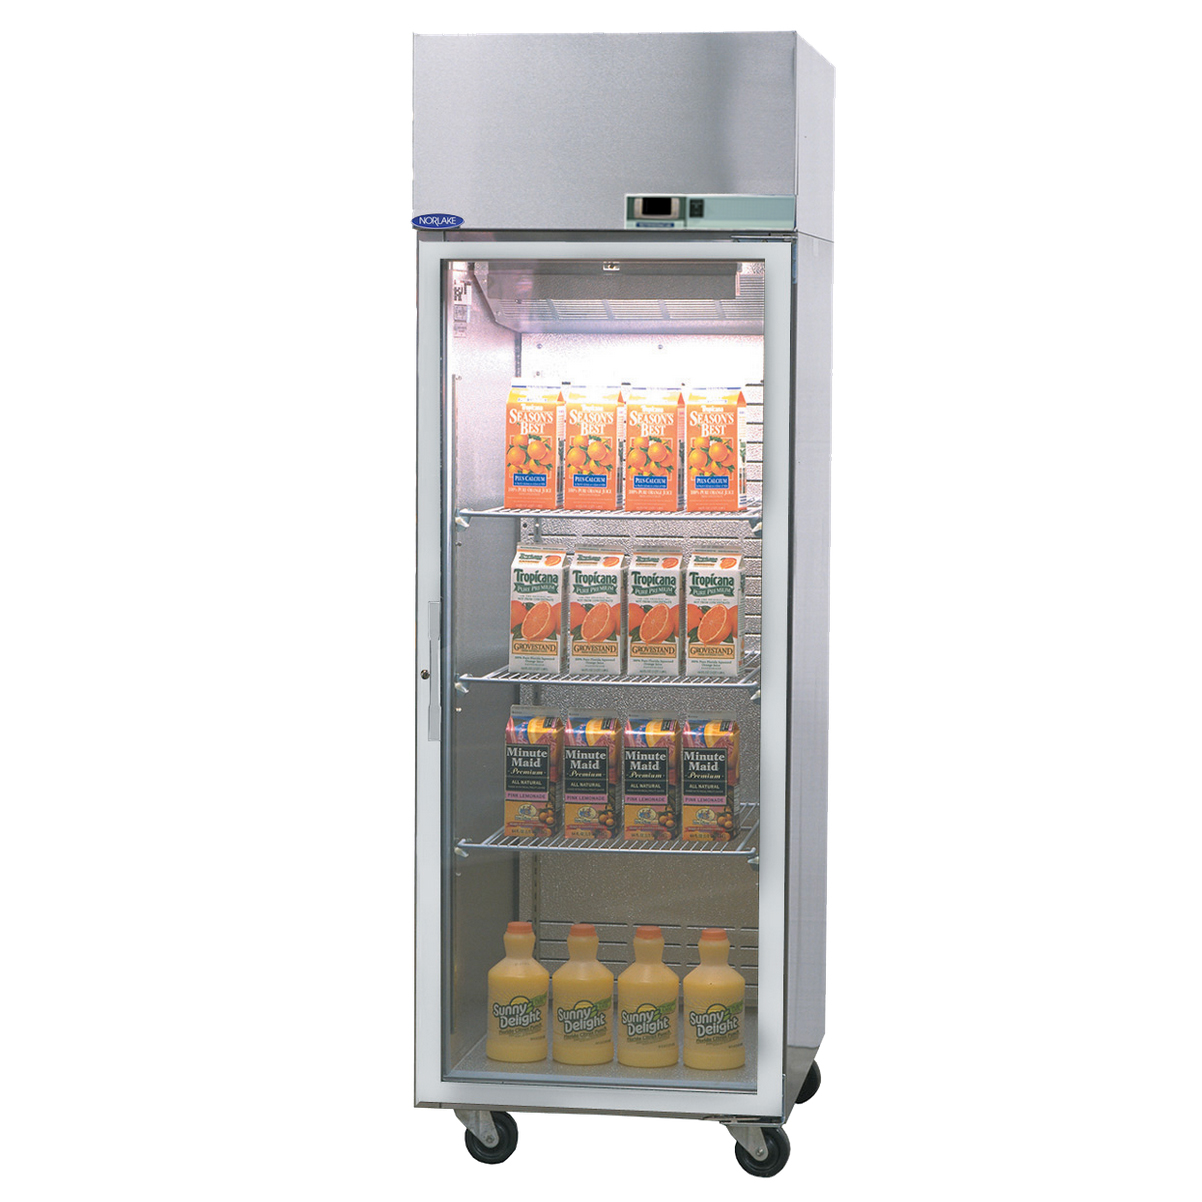 Nor-Lake NR242SSG/0X refrigerator, reach-in